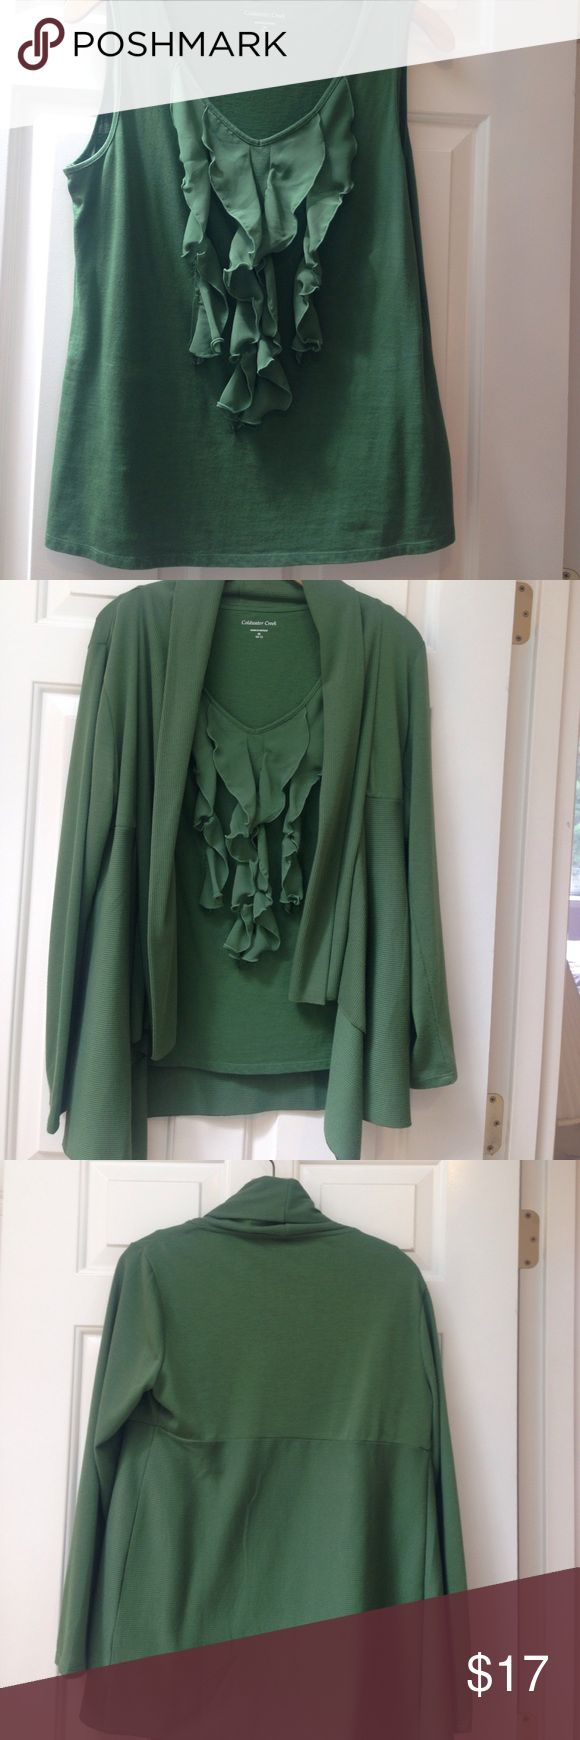 Sweater w/ matching top Beautiful Sage green sleeveless ruffled front top w/ long sleeved matching sweater Coldwater Creek Sweaters Cardigans